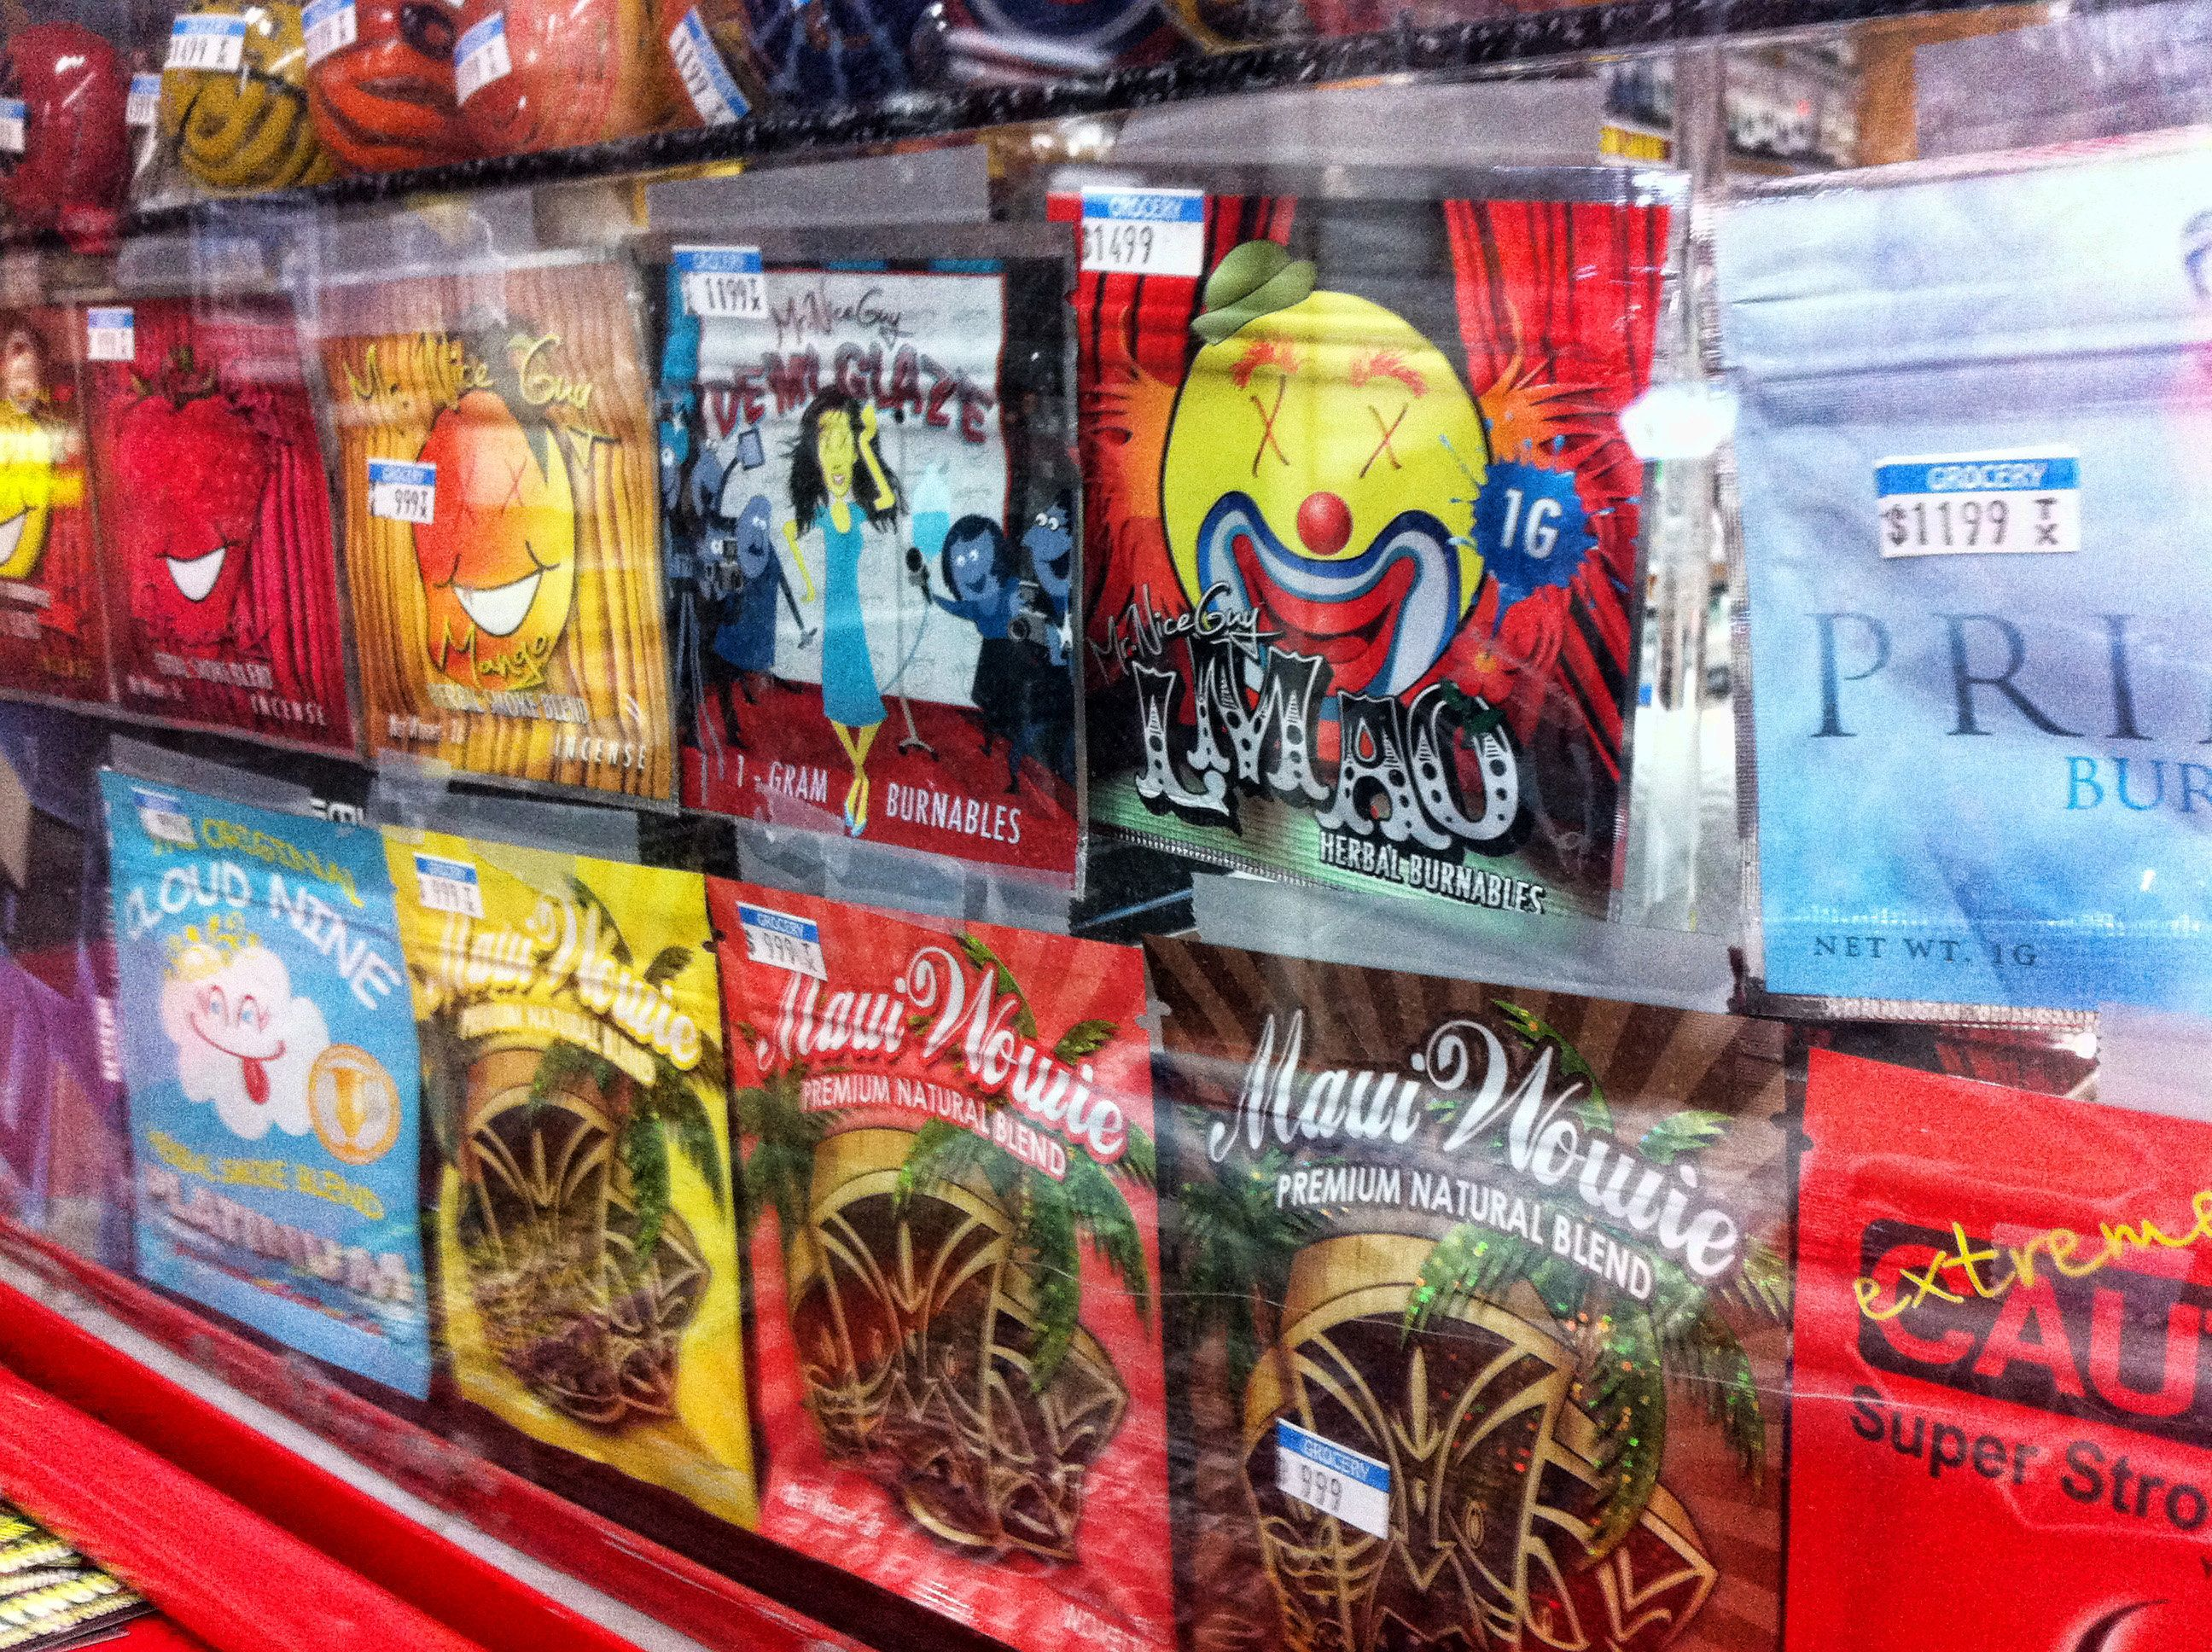 Synthetic marijuana, sold in colorful packages with names like Cloud Nine, Maui Wowie and Mr. Nice Guy, on display behind the glass counter at a Kwik Stop in Hollywood, Florida.